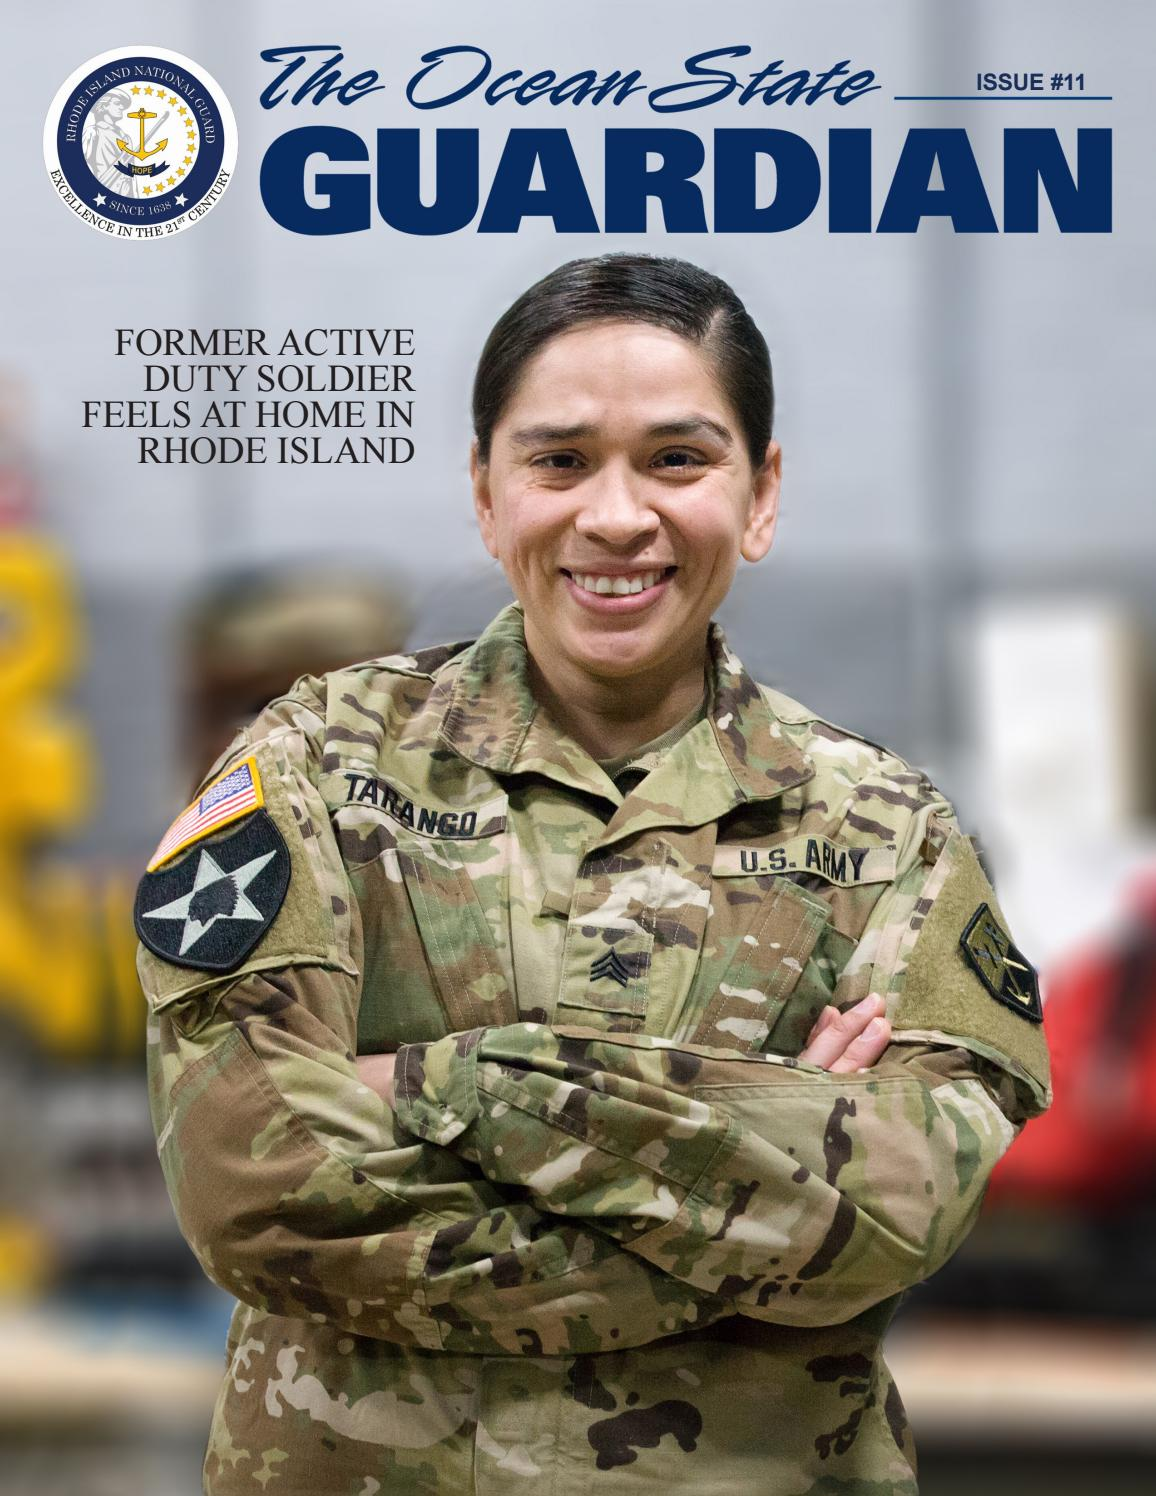 Ocean State Guardian Online Issue 11 By Rhode Island